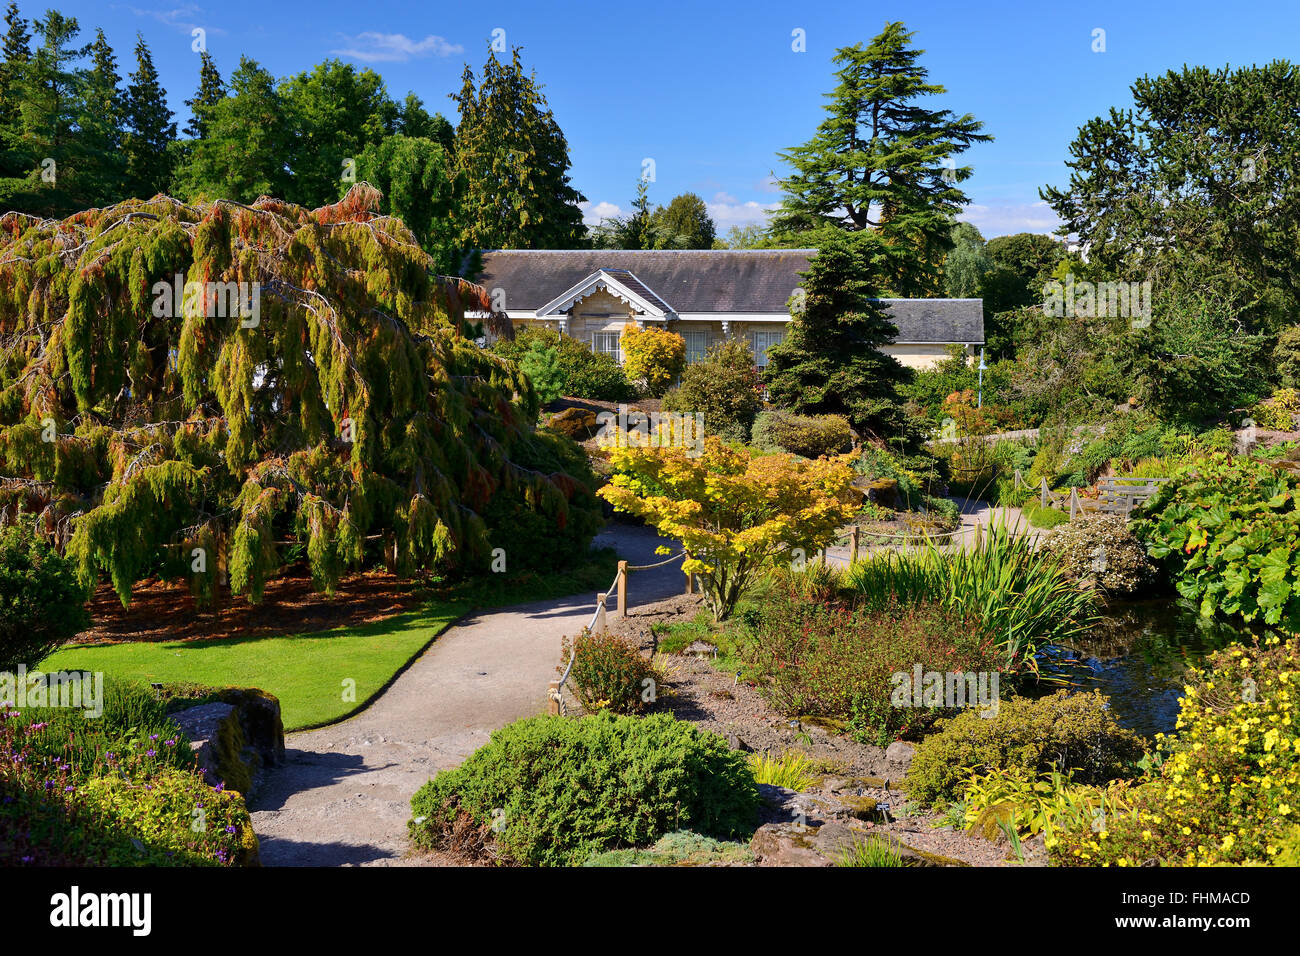 Rock garden, Royal Botanic Garden, Edinburgh, Scotland, UK Stock Photo